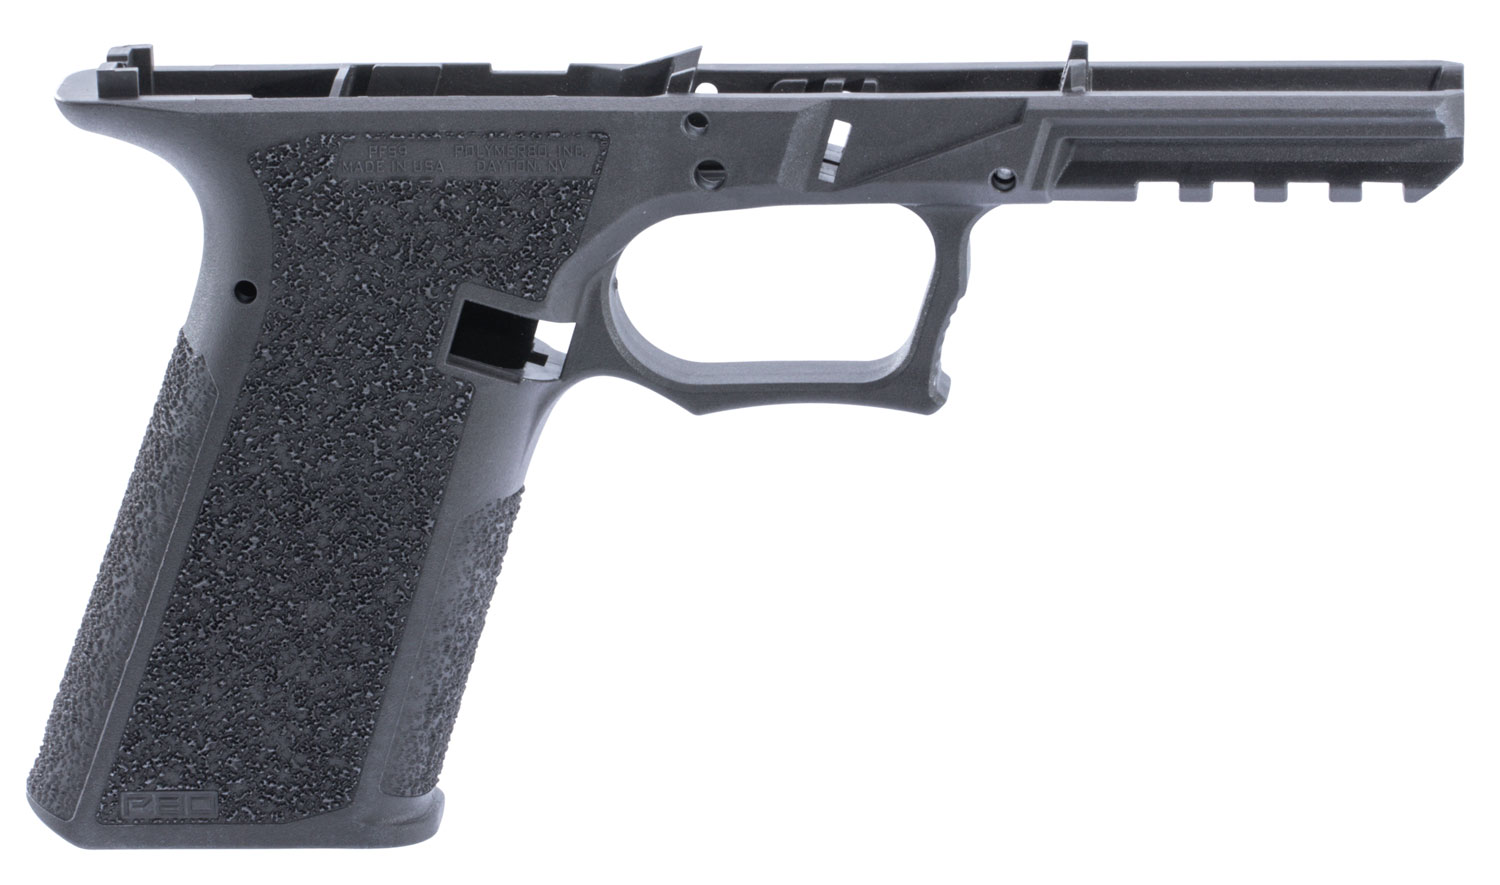 polymer 80 inc - G17/22 Gen3 Compatible -  for sale